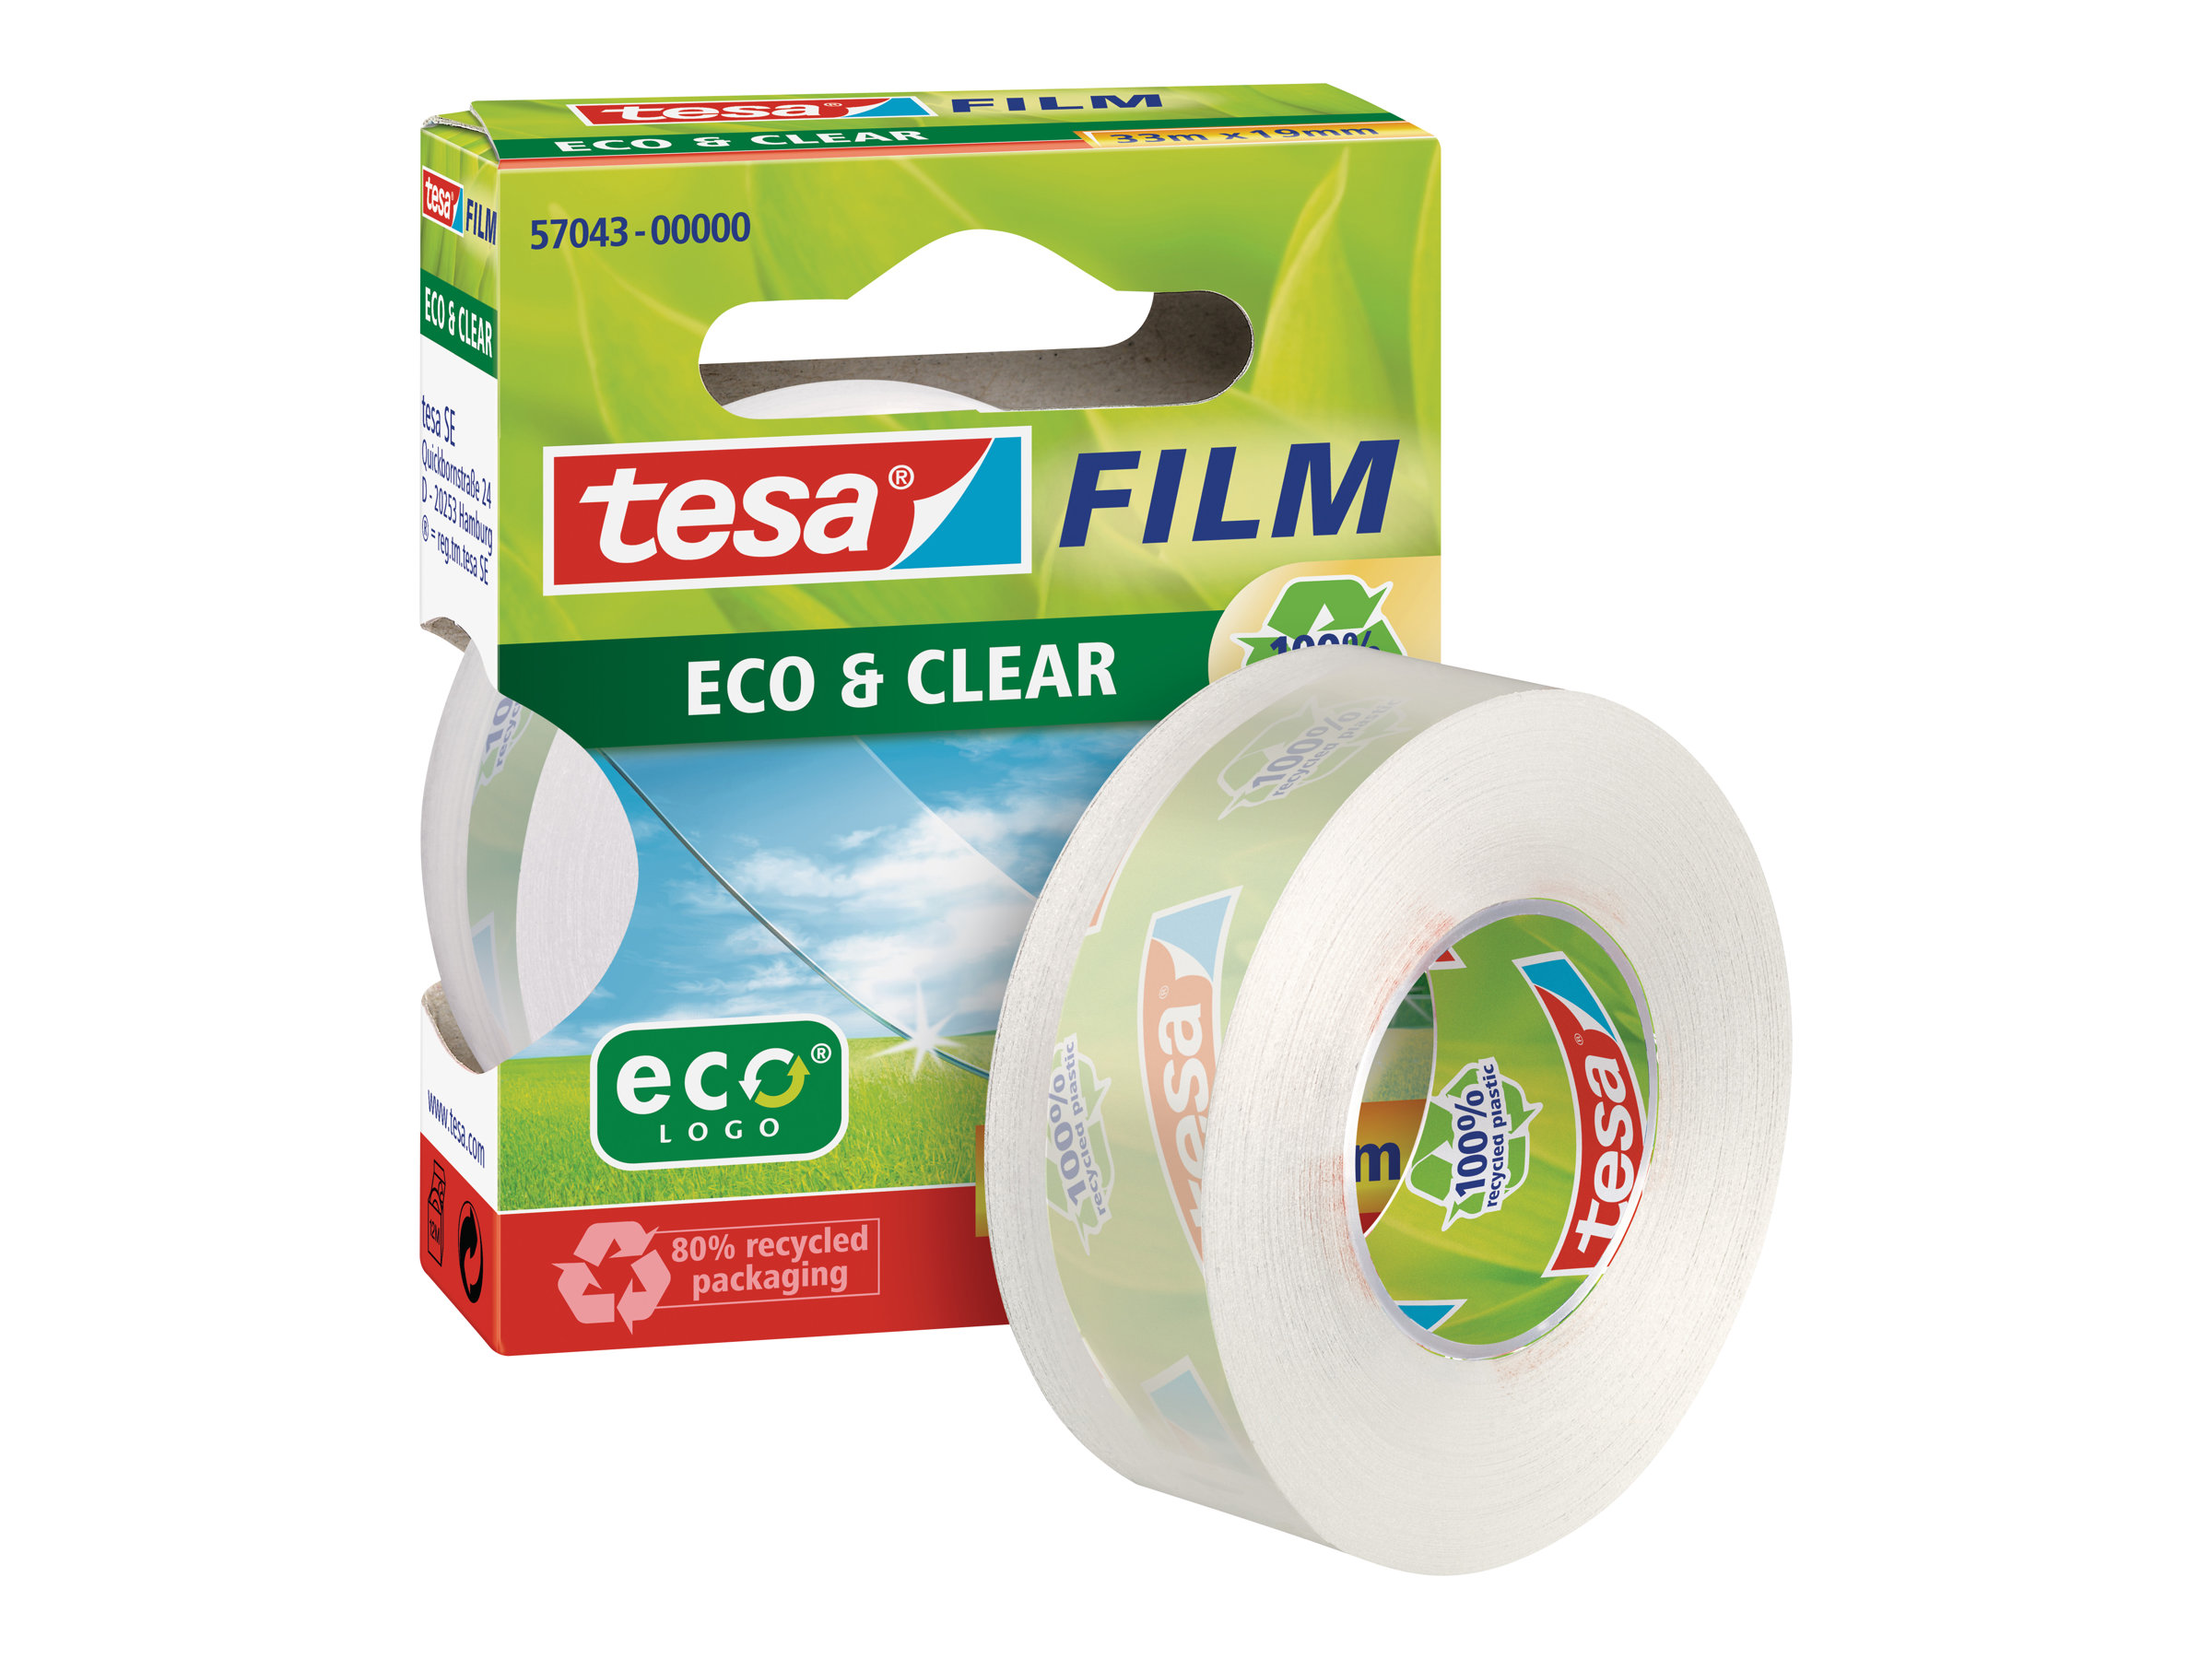 Tesafilm Eco & Clear - Adhésif de bureau - 19 mm x 33 m - transparent